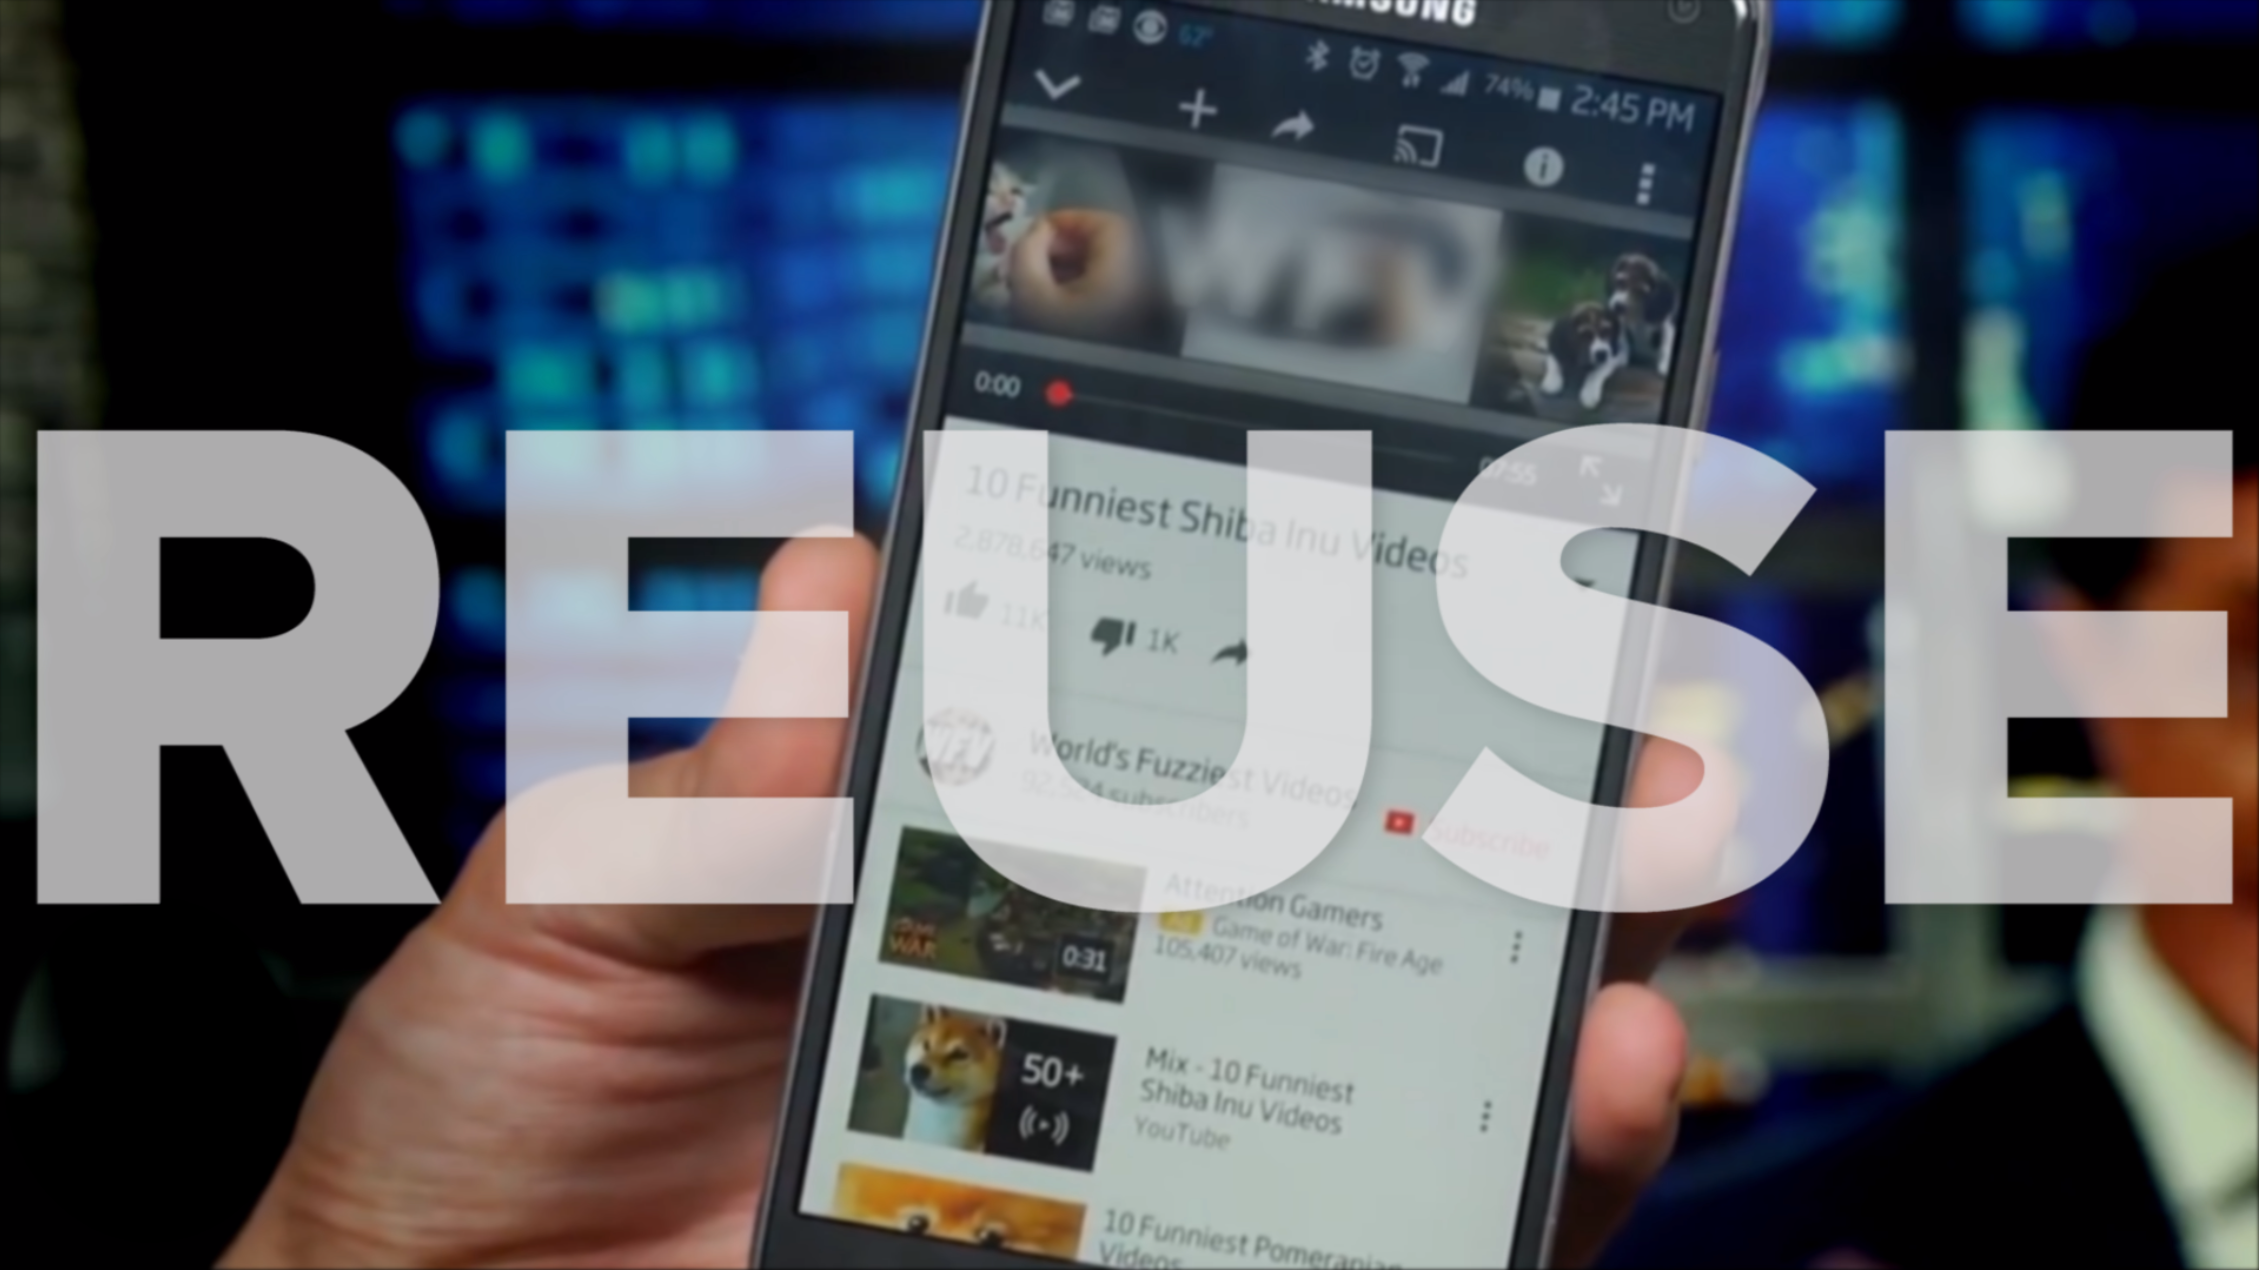 Video: Top 5 ways to reuse an Android device